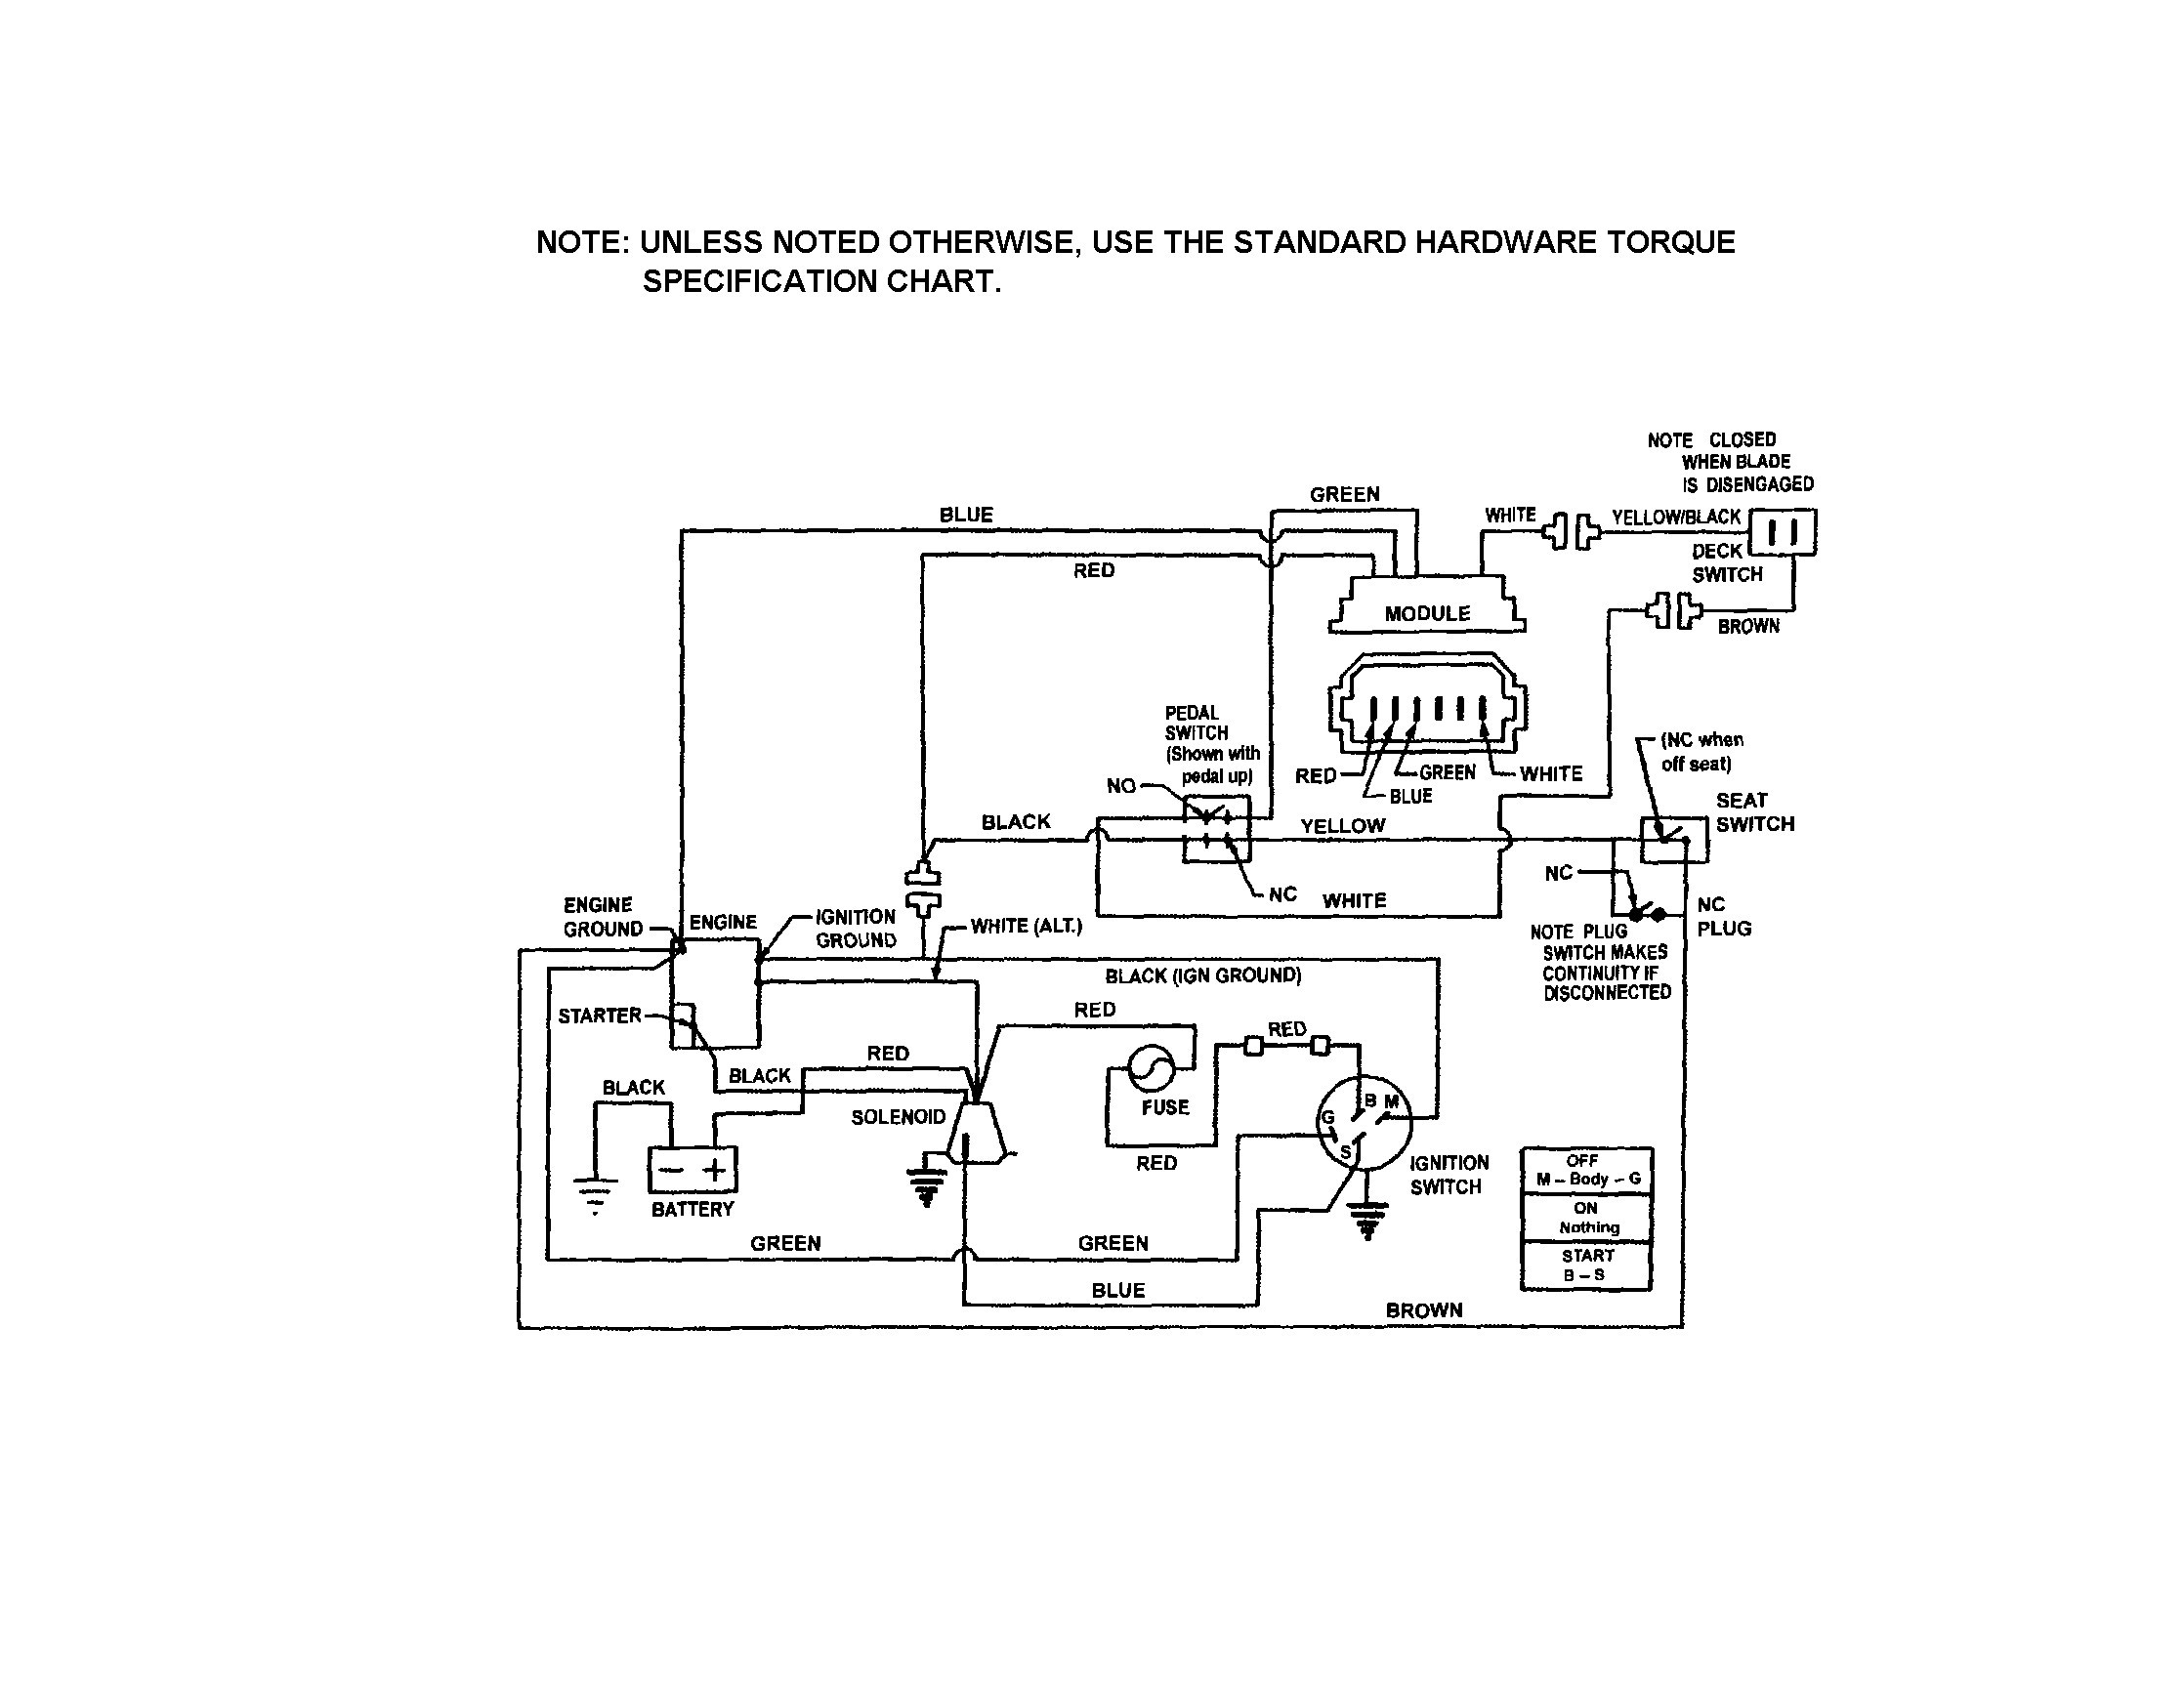 Briggs and Stratton 500 Series Engine Diagram Perfect 11 Hp Briggs and  Stratton Engine Diagram Collection